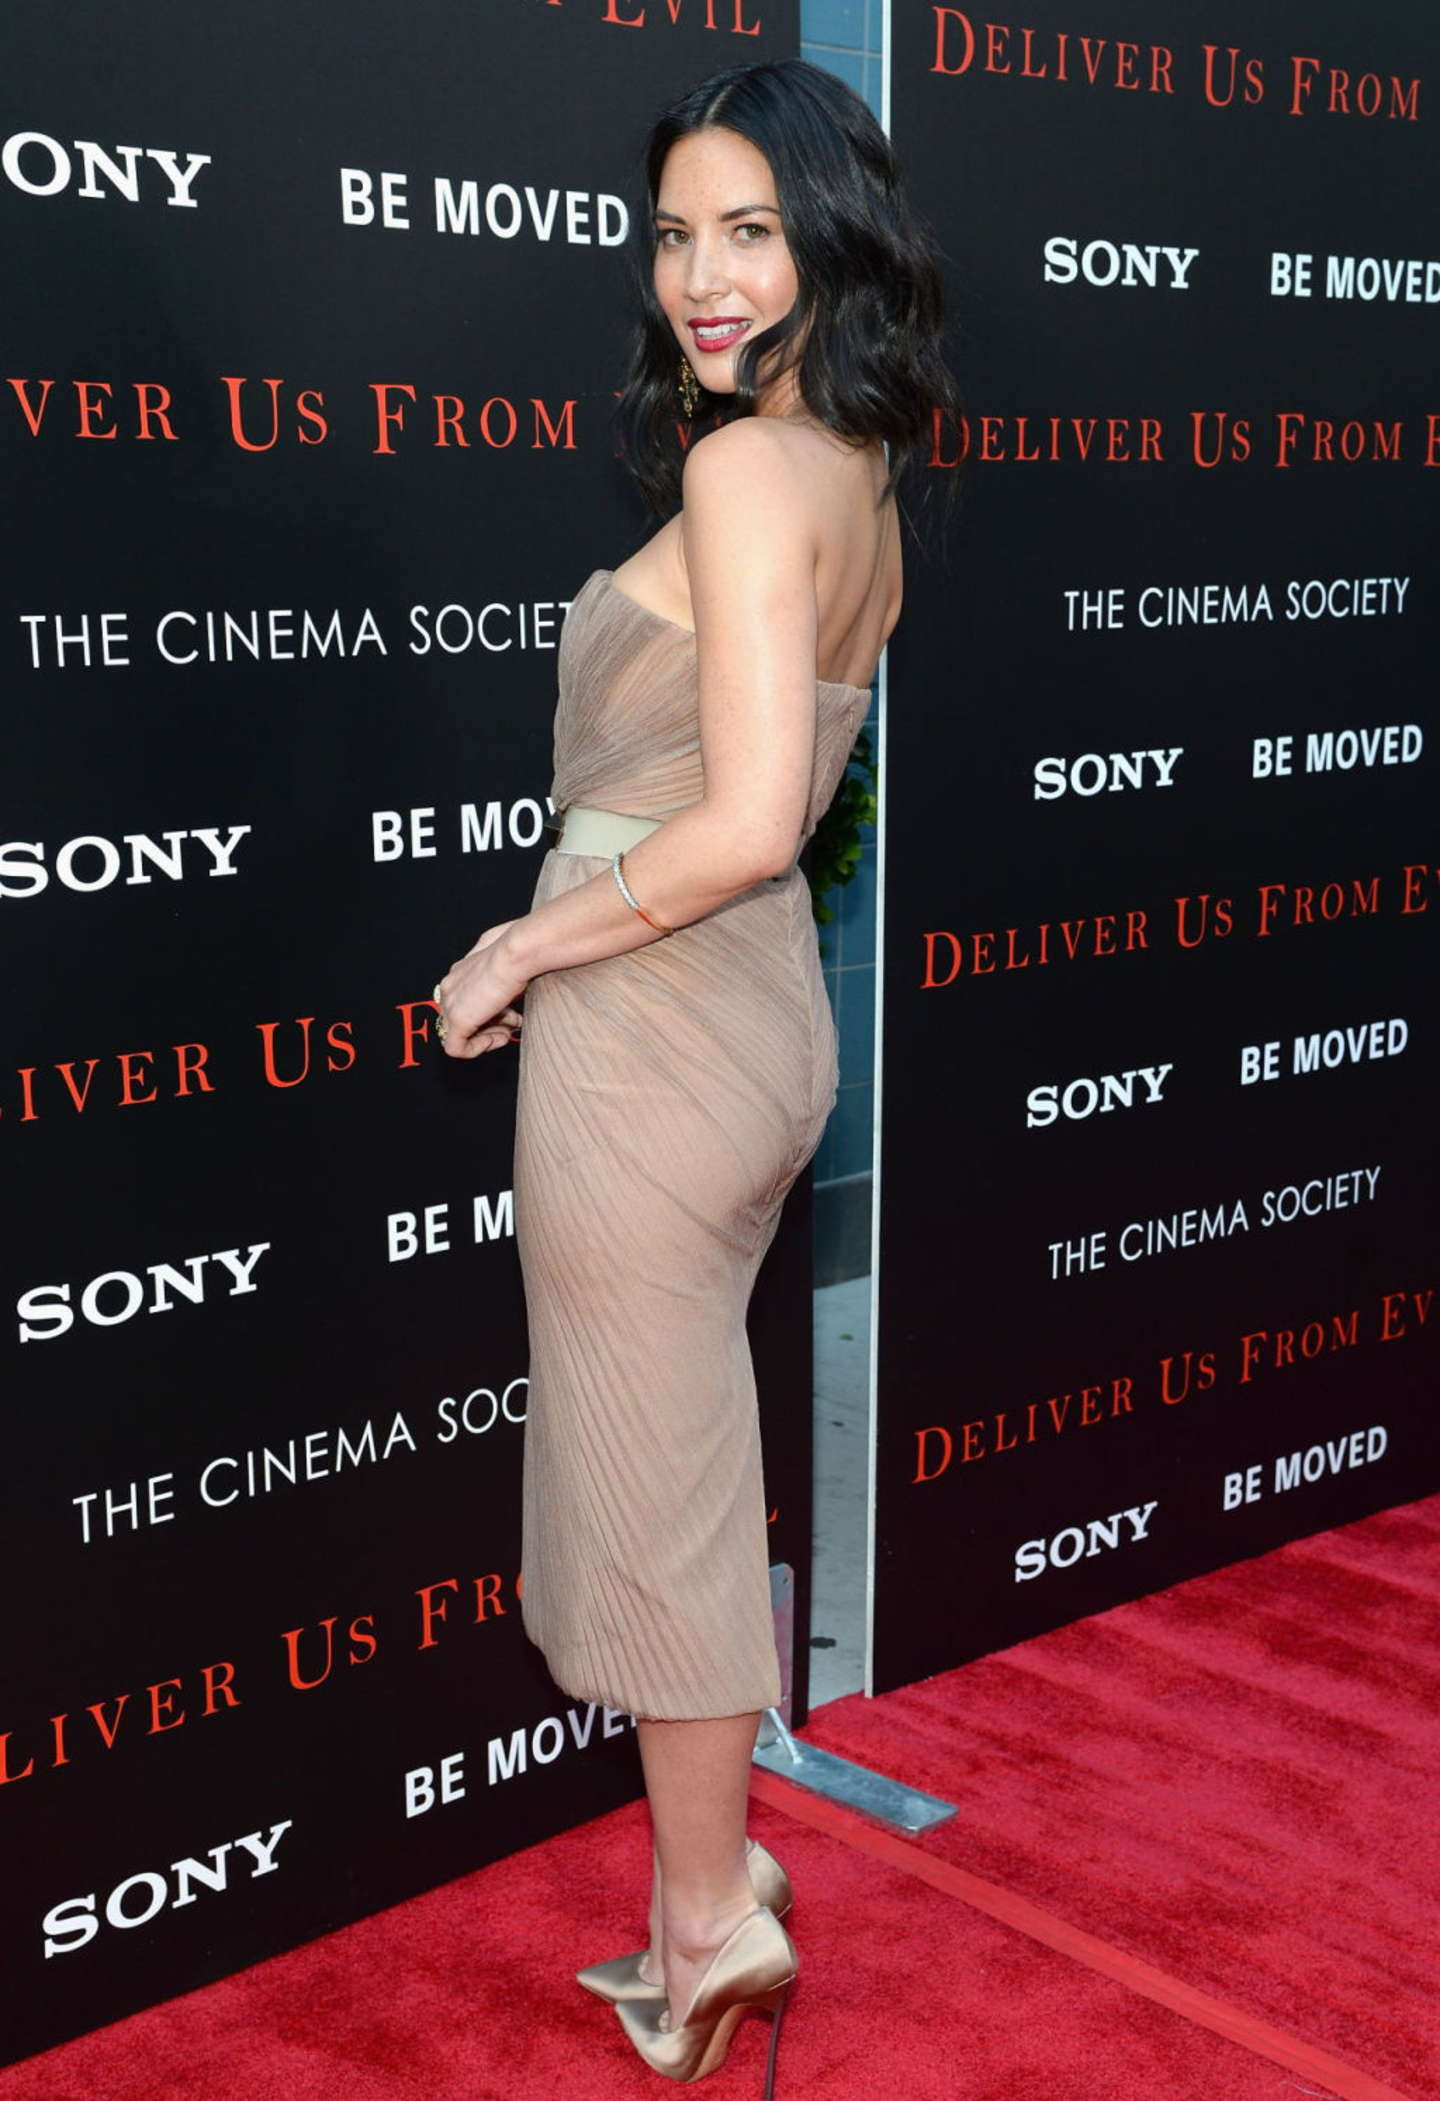 Olivia Munn - Deliver Us From Evil WonderCon - Page 6